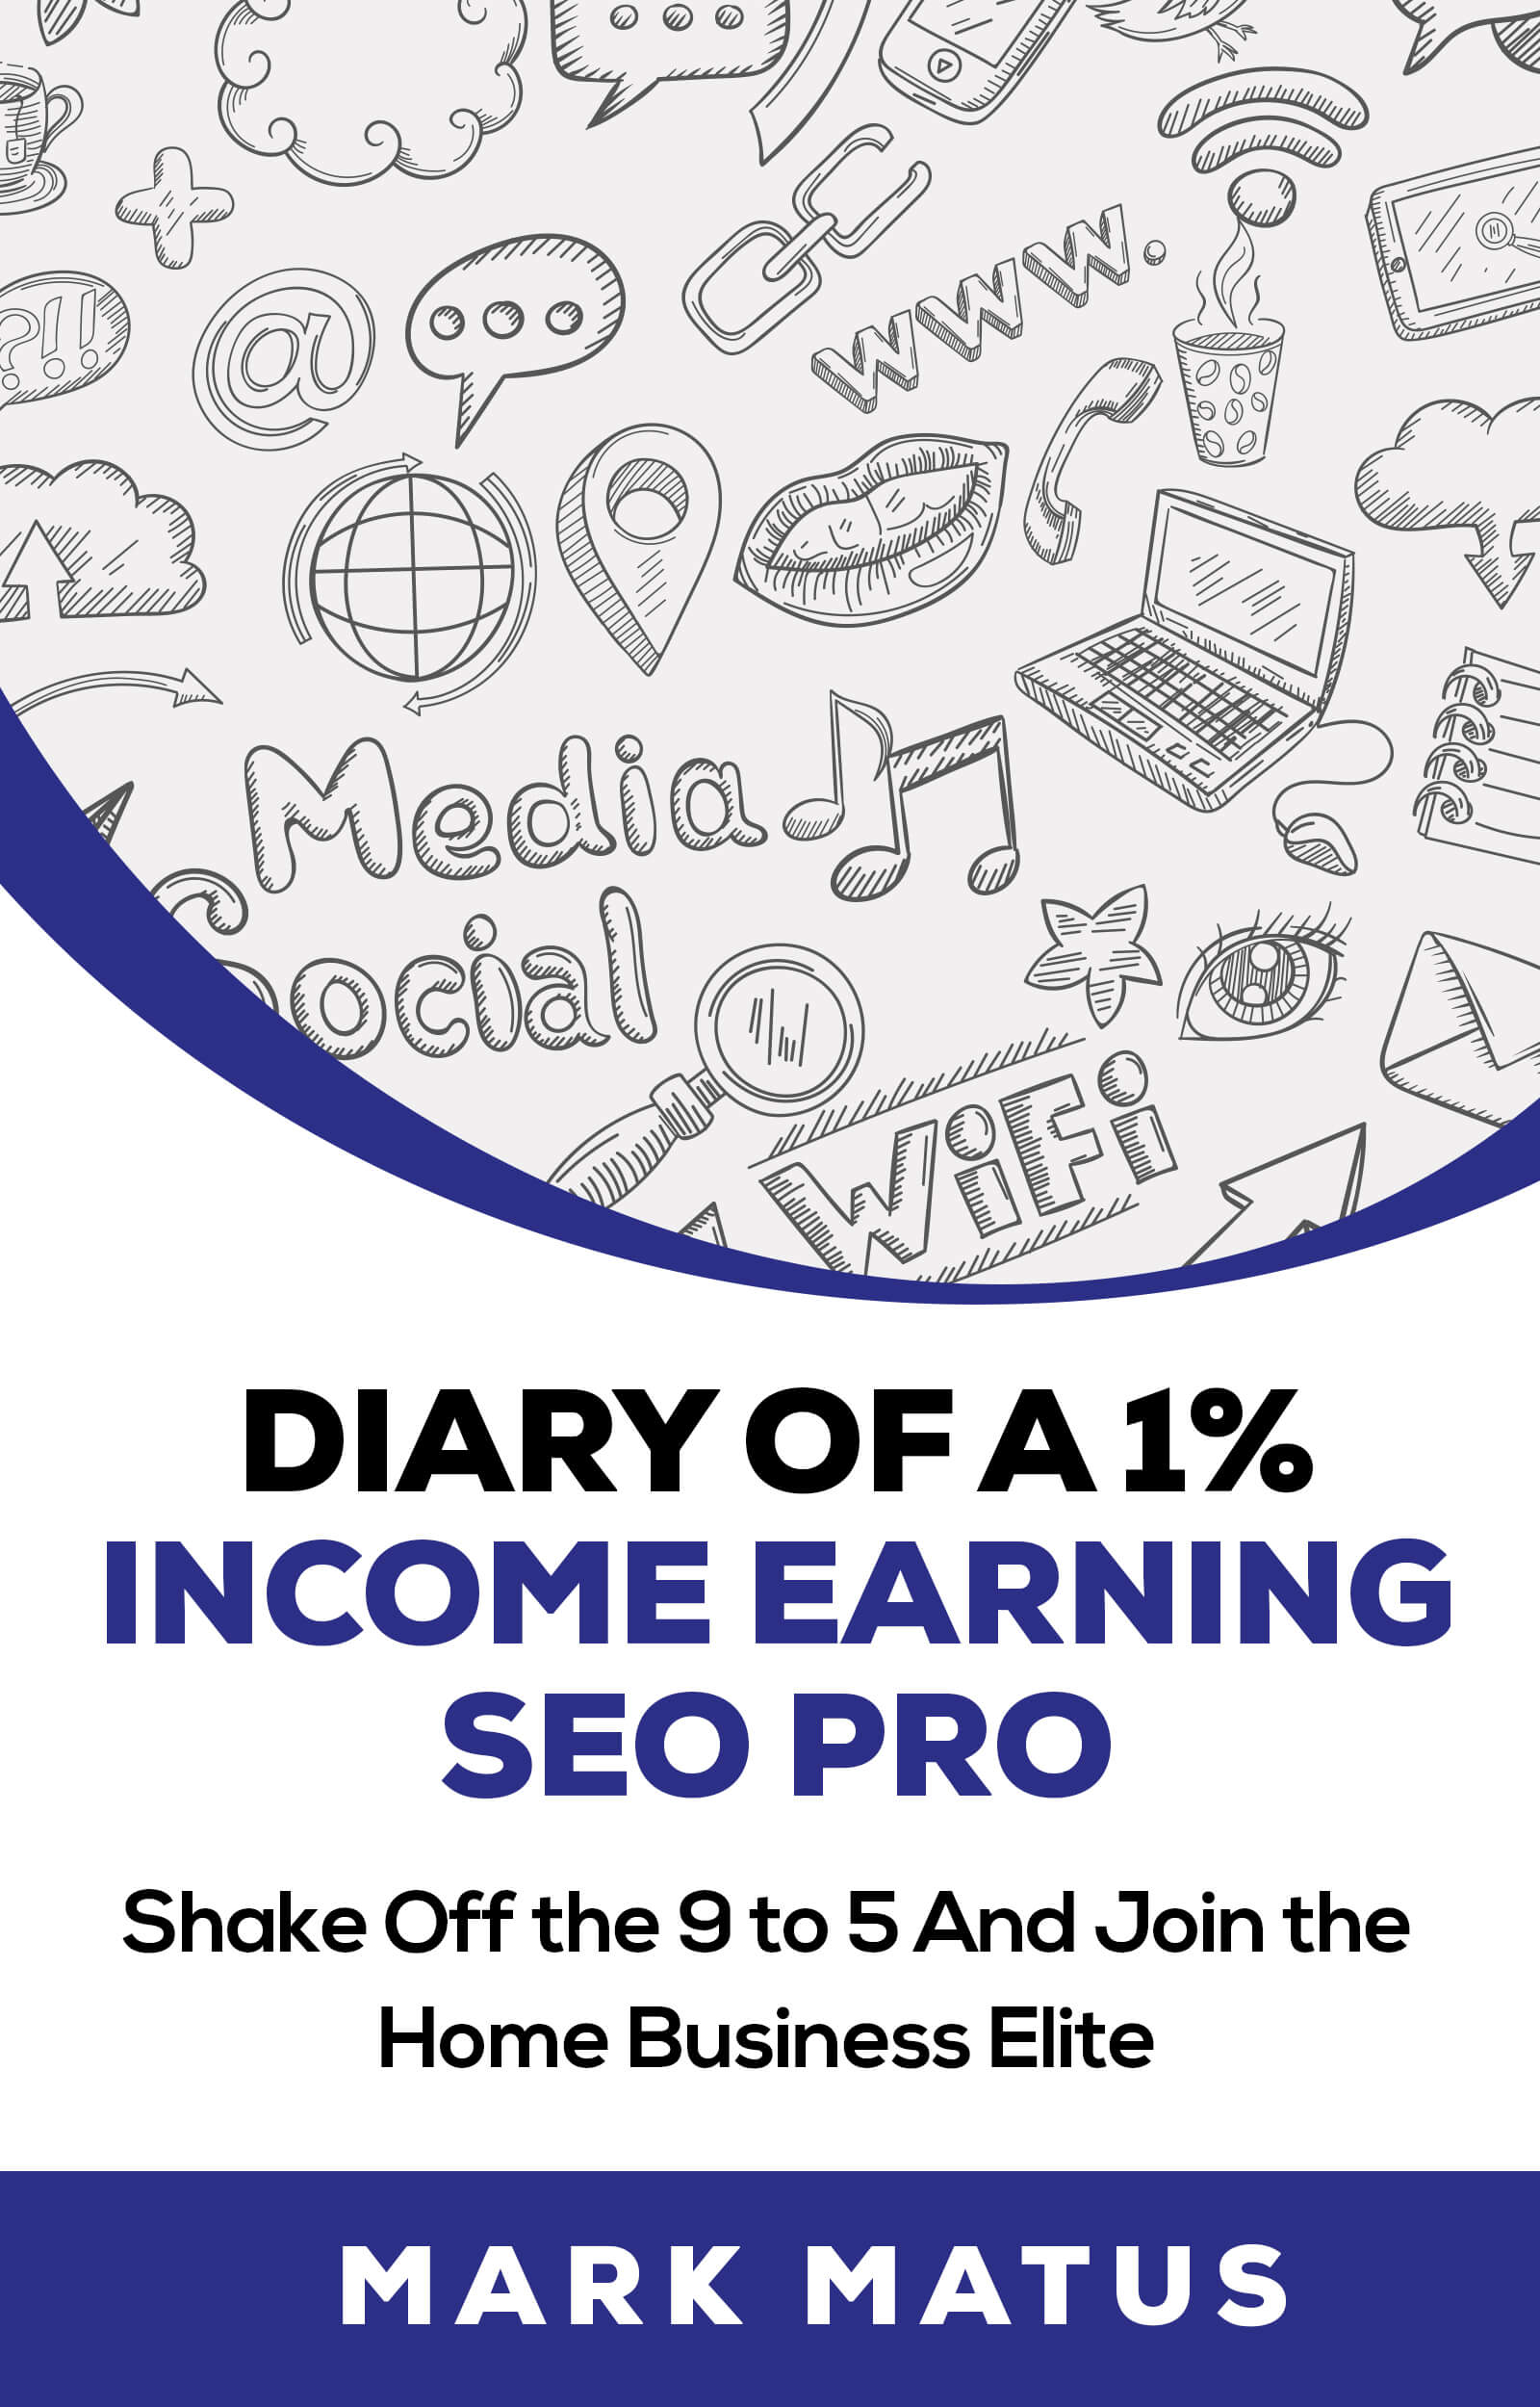 Marks Diary of a 1% Income Earning SEO Pro